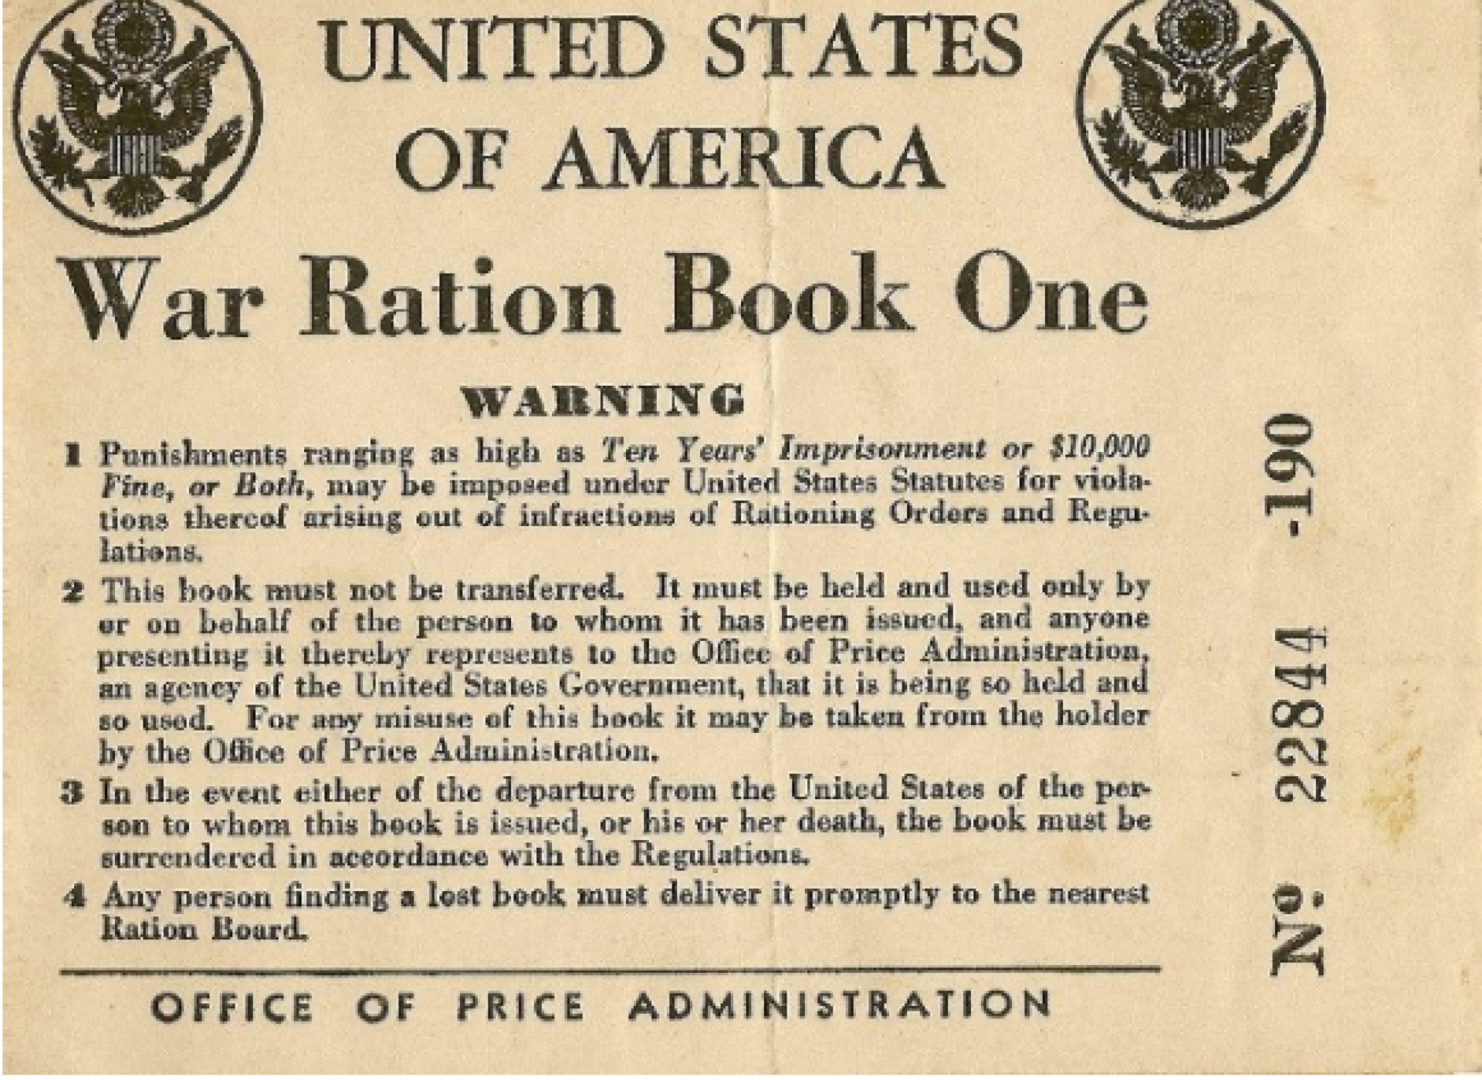 ration-book-one-front.png